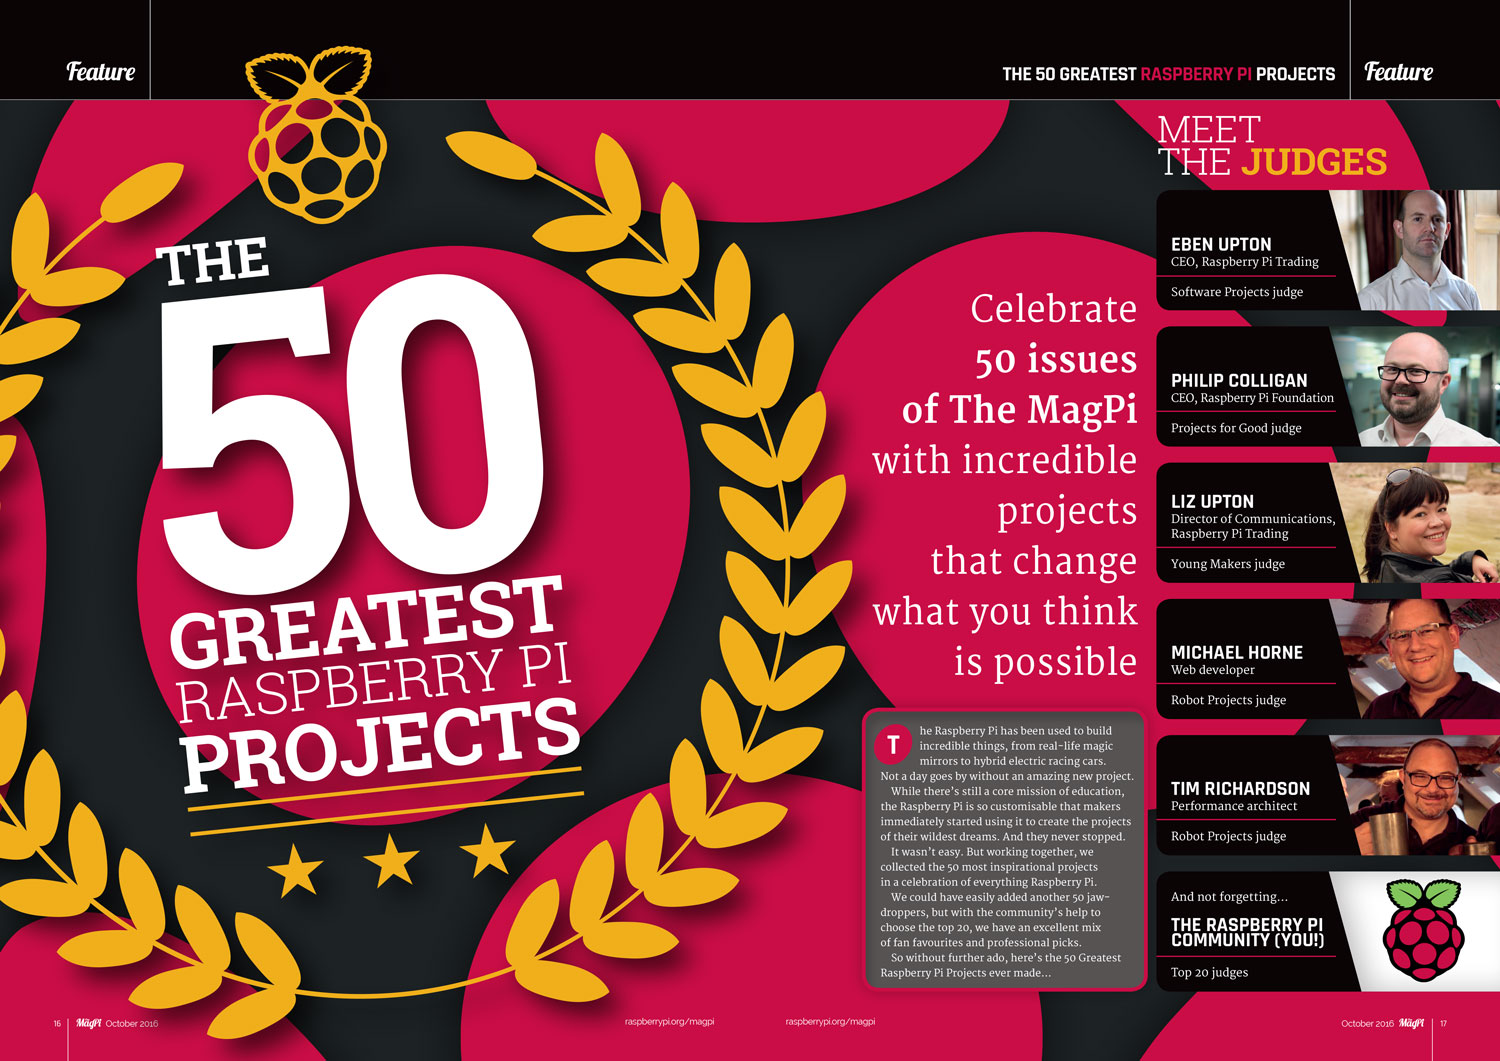 The 50 Greatest Raspberry Pi projects